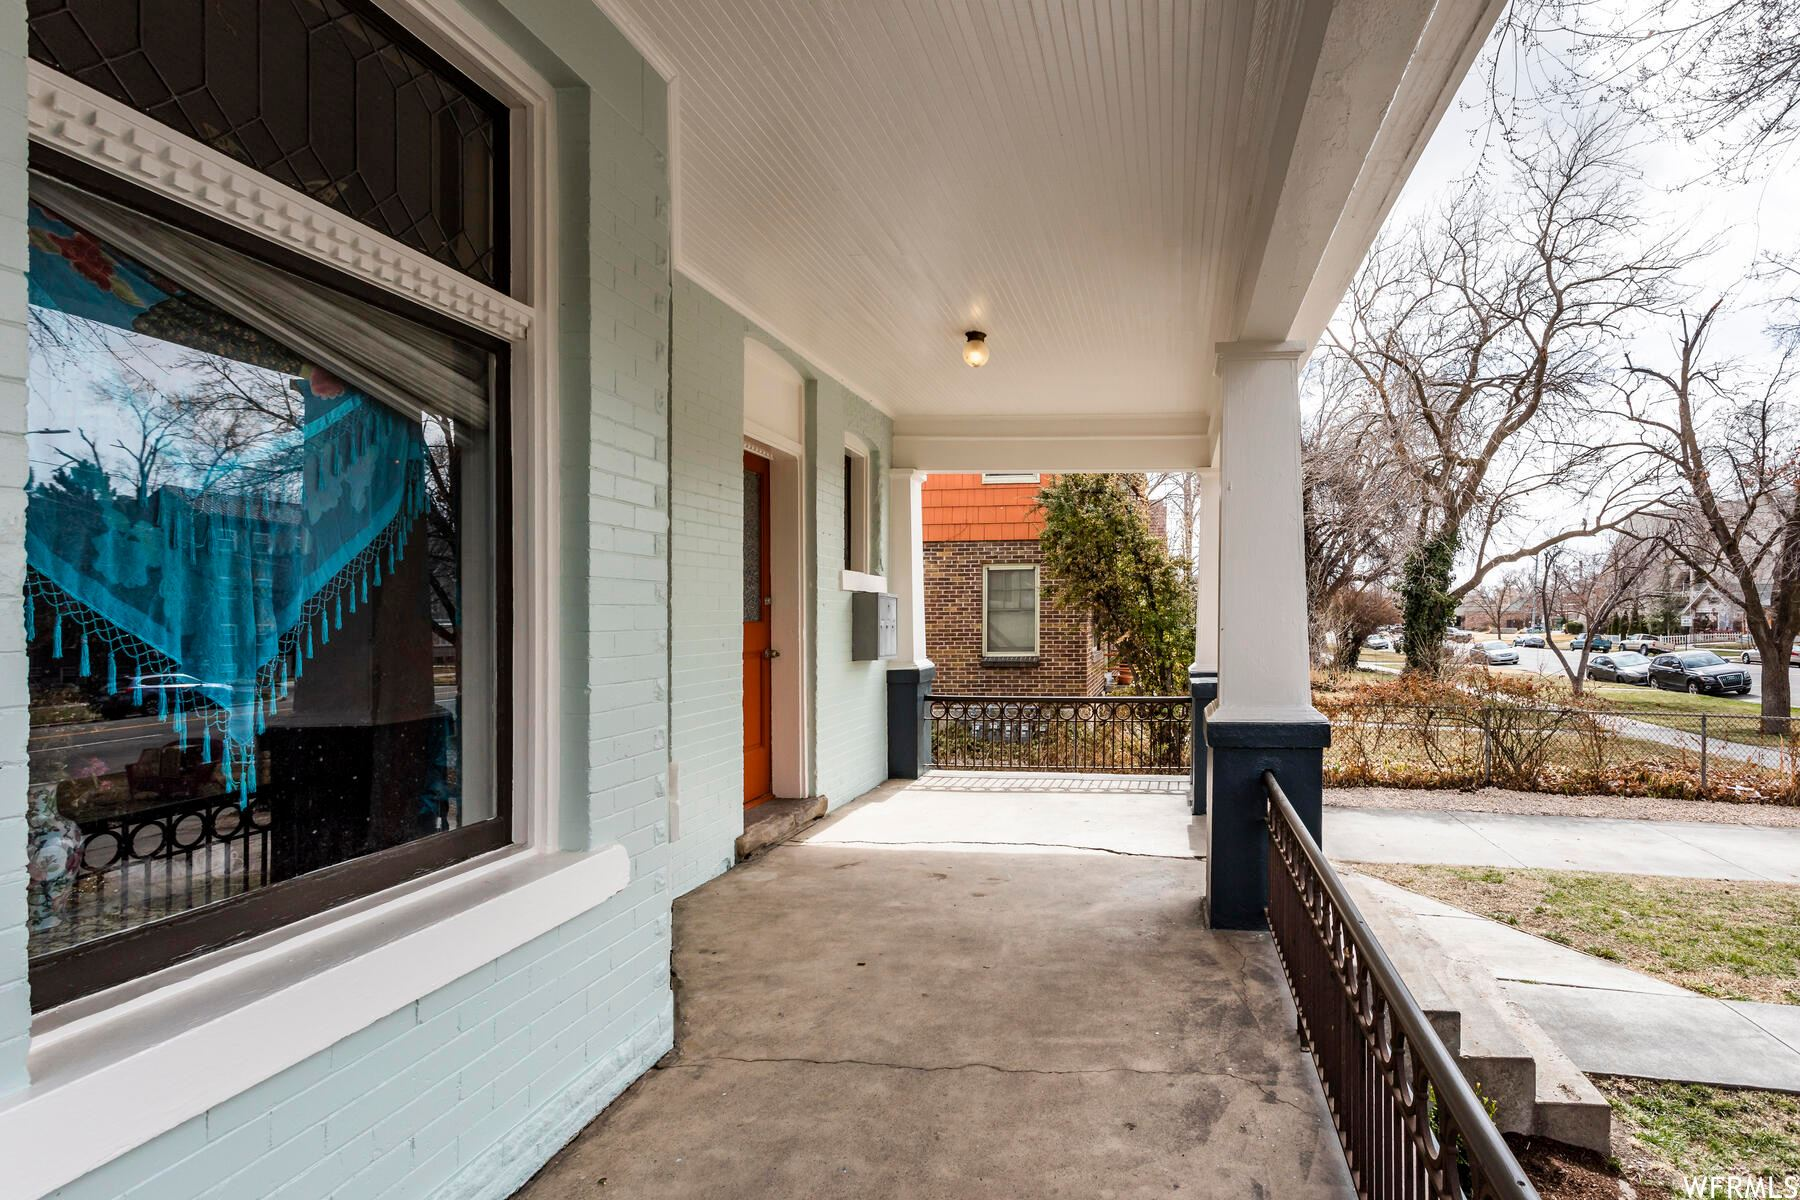 Photo of 817 S 500 E, Salt Lake City, UT 84102 (MLS # 1729059)